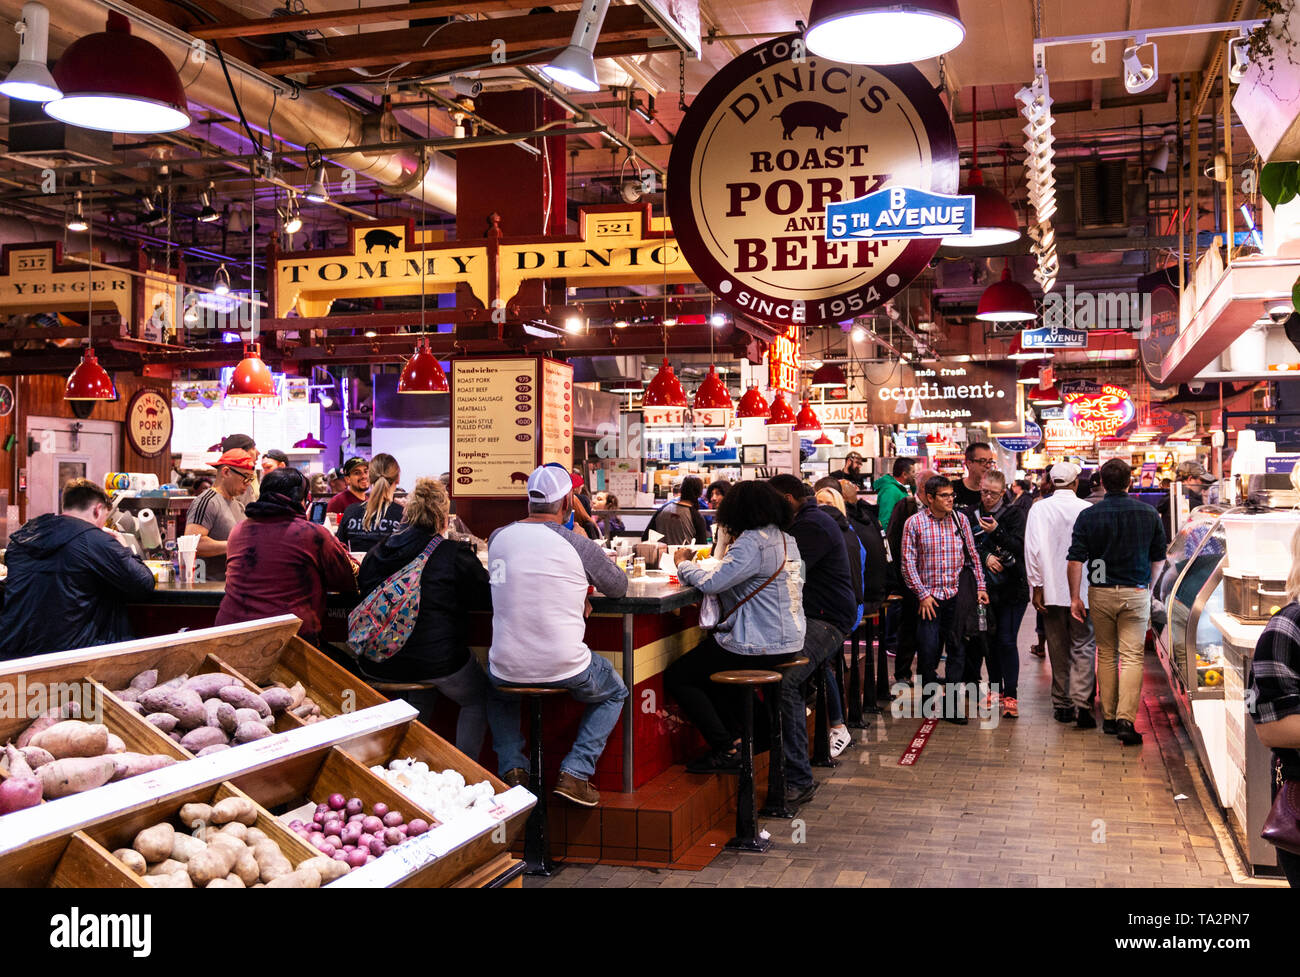 Philadelphia, Pennsylvania - 26 April 2019: Customers sitting at a counter and customers walking around purchasing food and other produce at the Readi - Stock Image